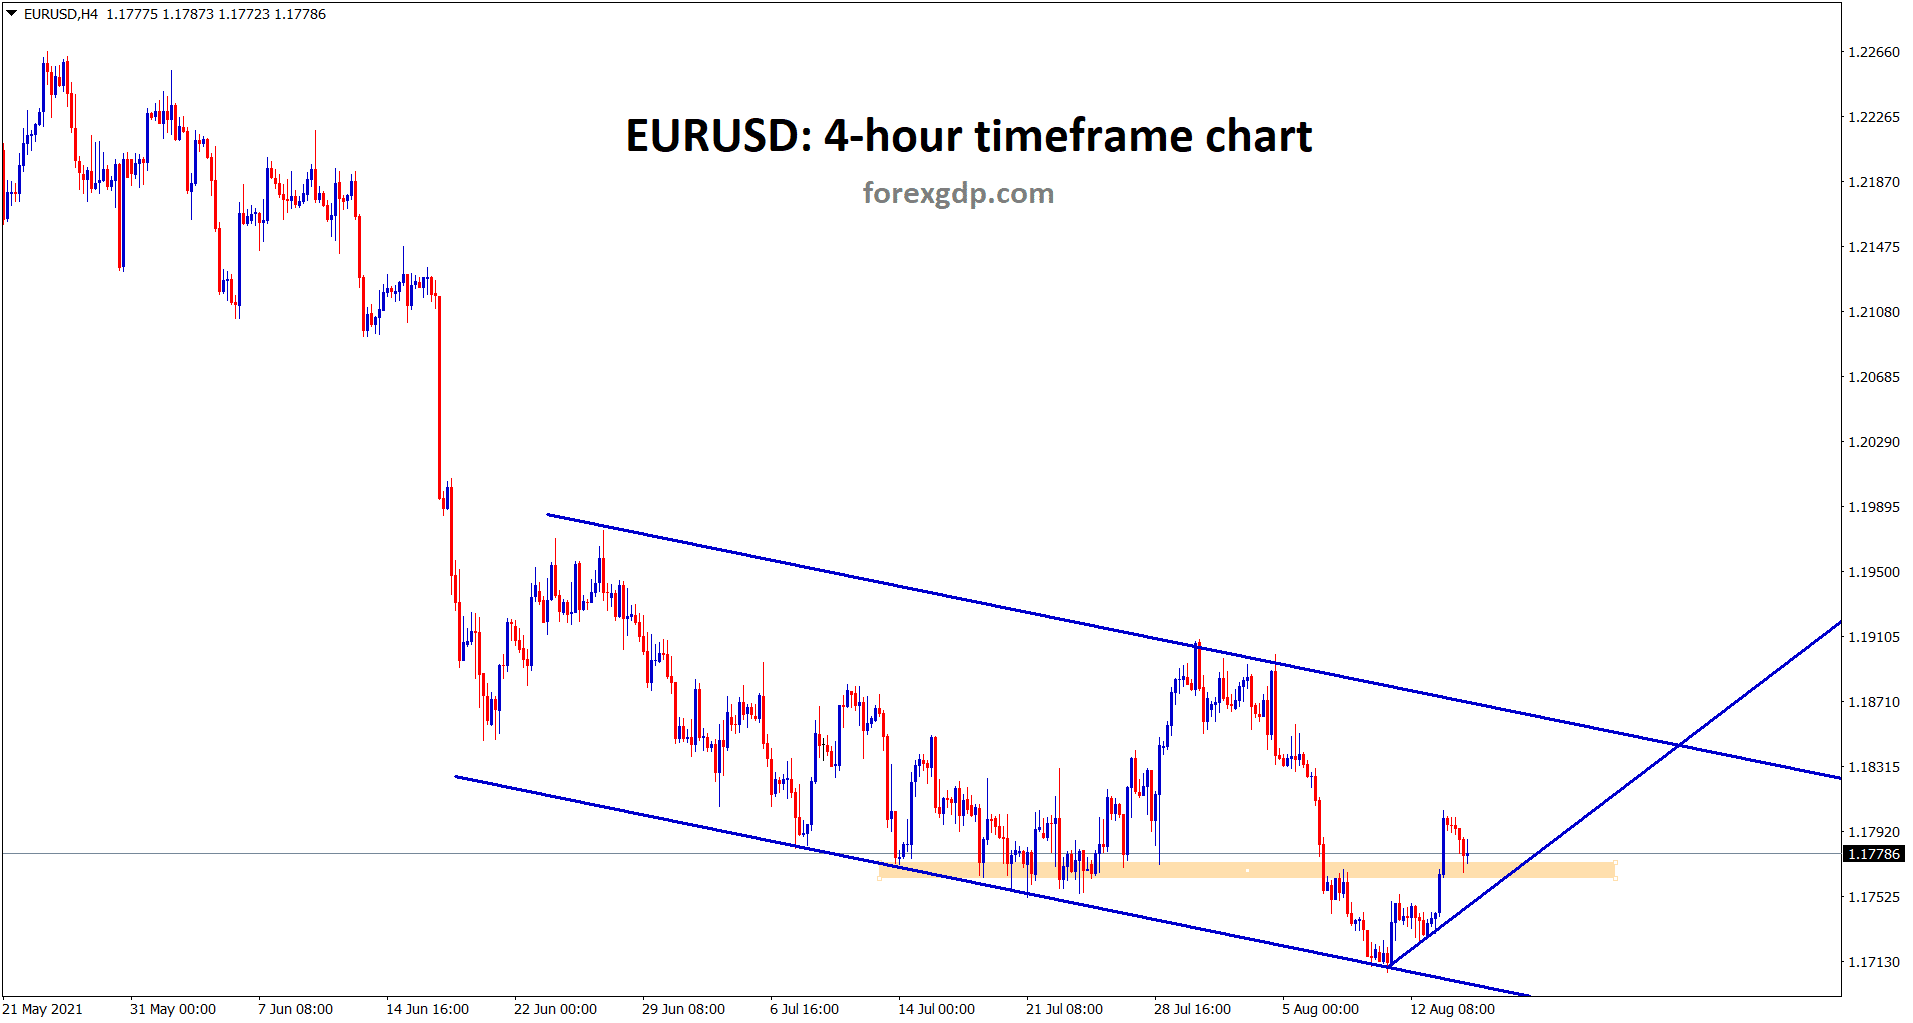 EURUSD is moving up slowly between this descending channel range